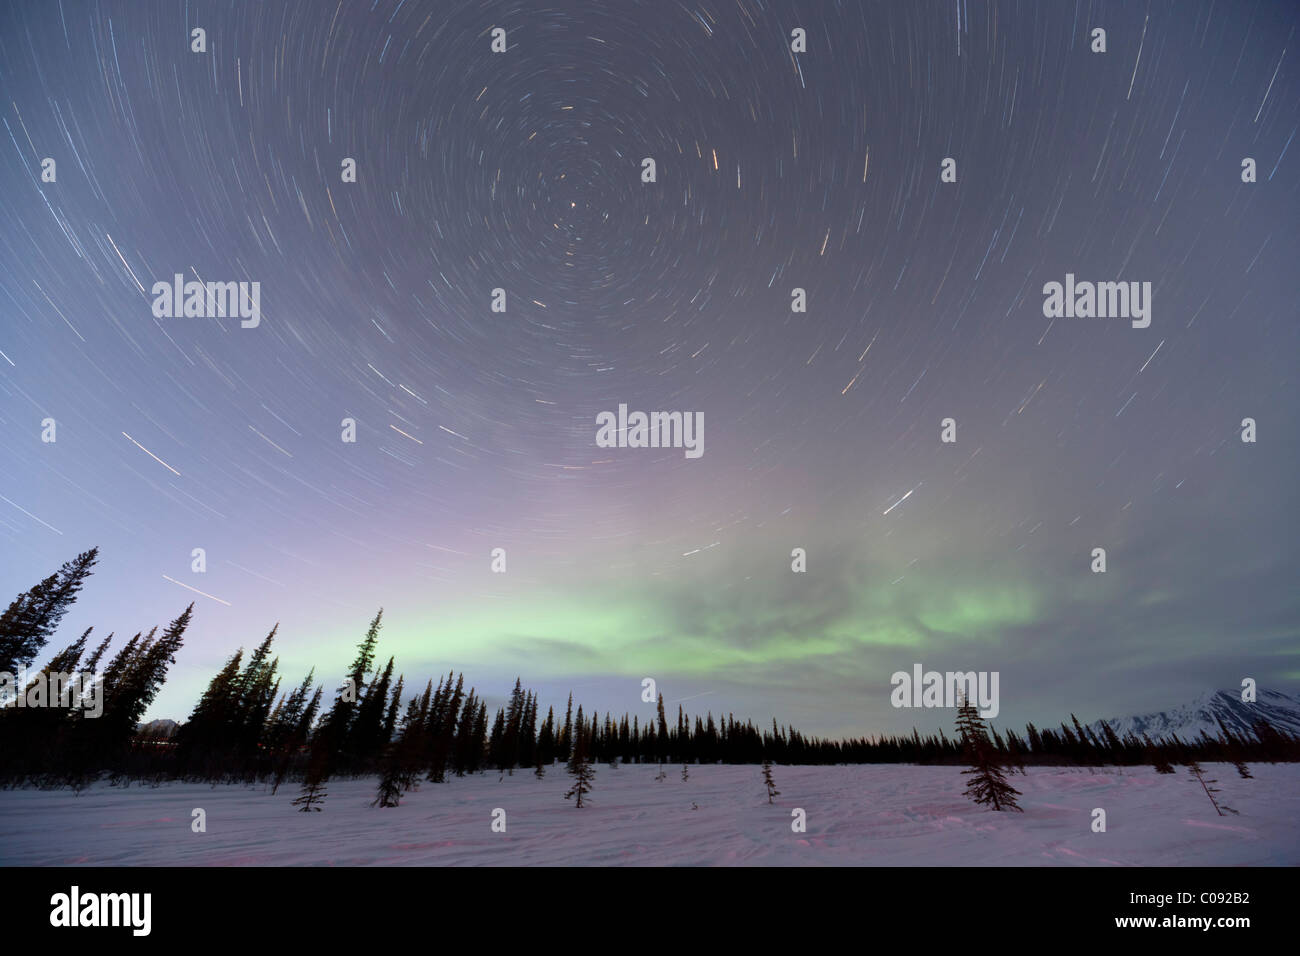 View of Northern Lights and star trails above spruce trees in Broad Pass, Southcentral Alaska, Winter Stock Photo